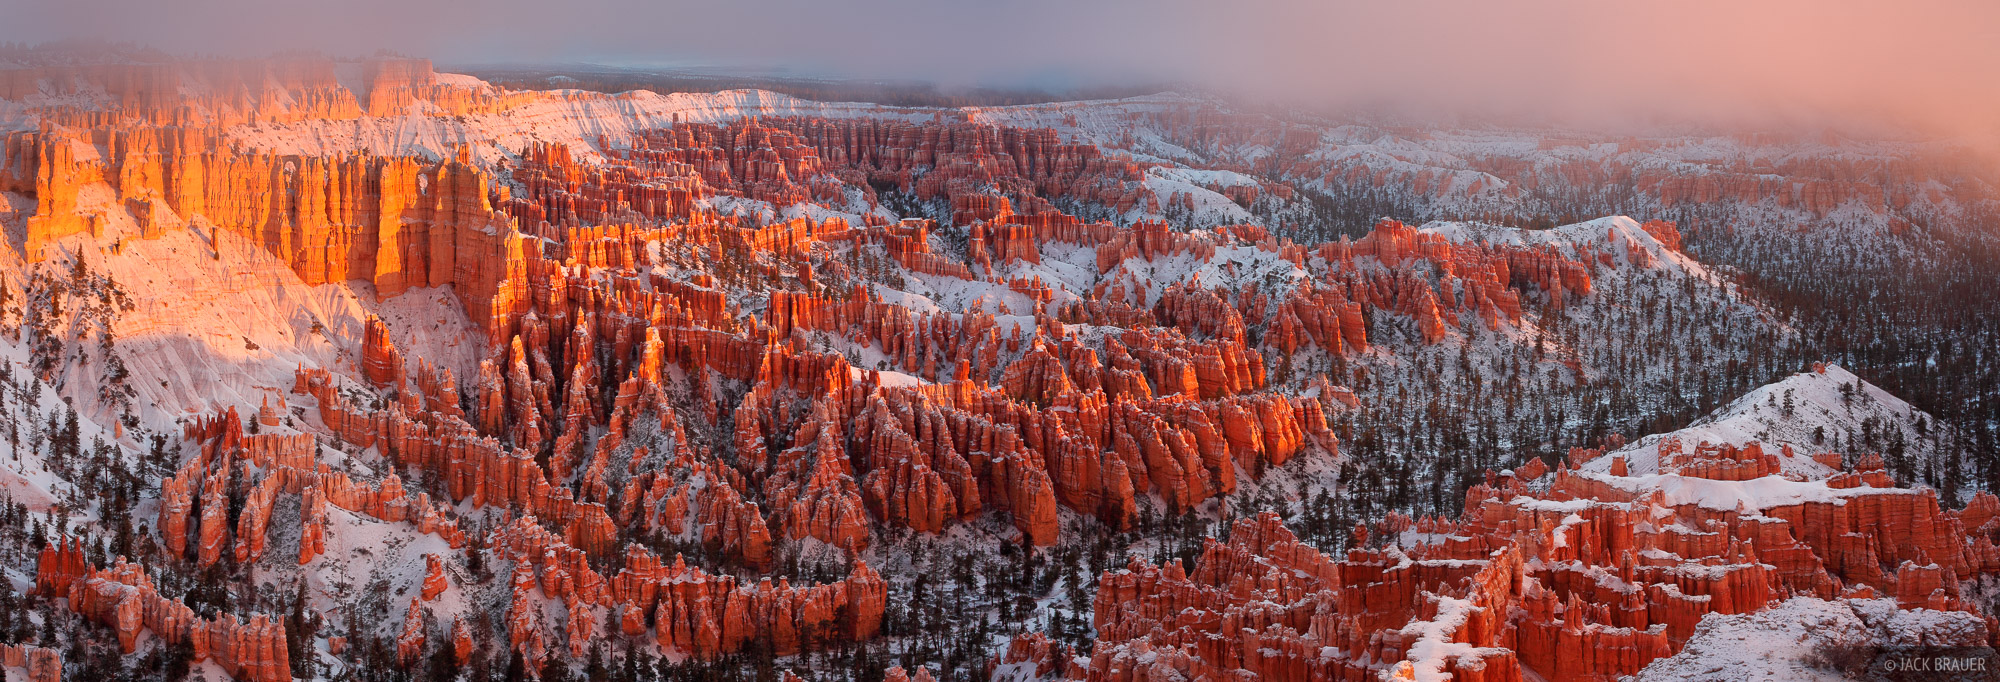 Bryce Canyon National Park, Bryce Point, snowy, sunrise, Utah